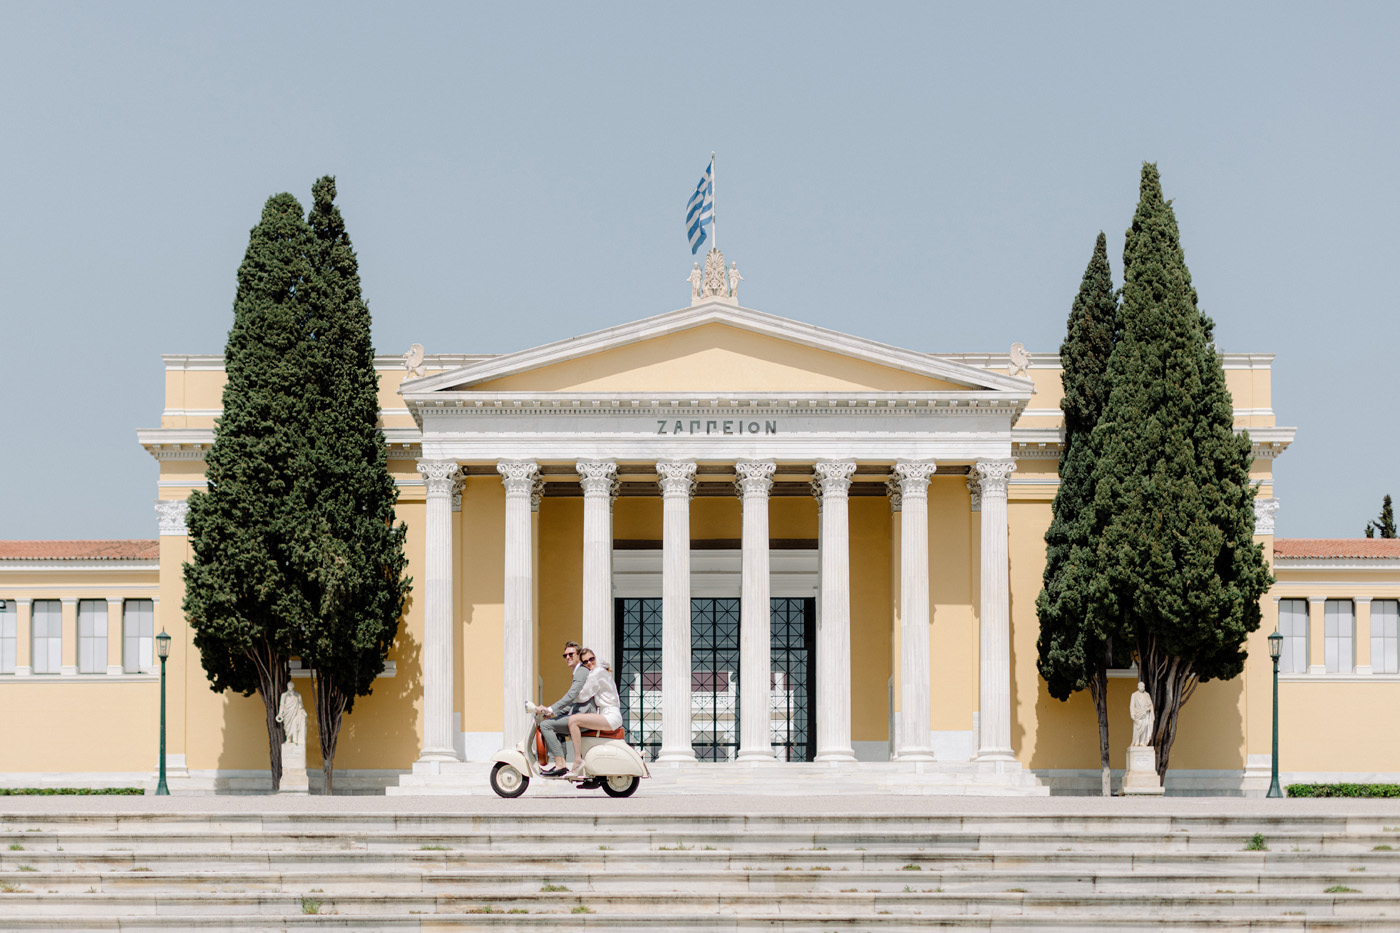 Wedding Proposal In Athens - Zappion